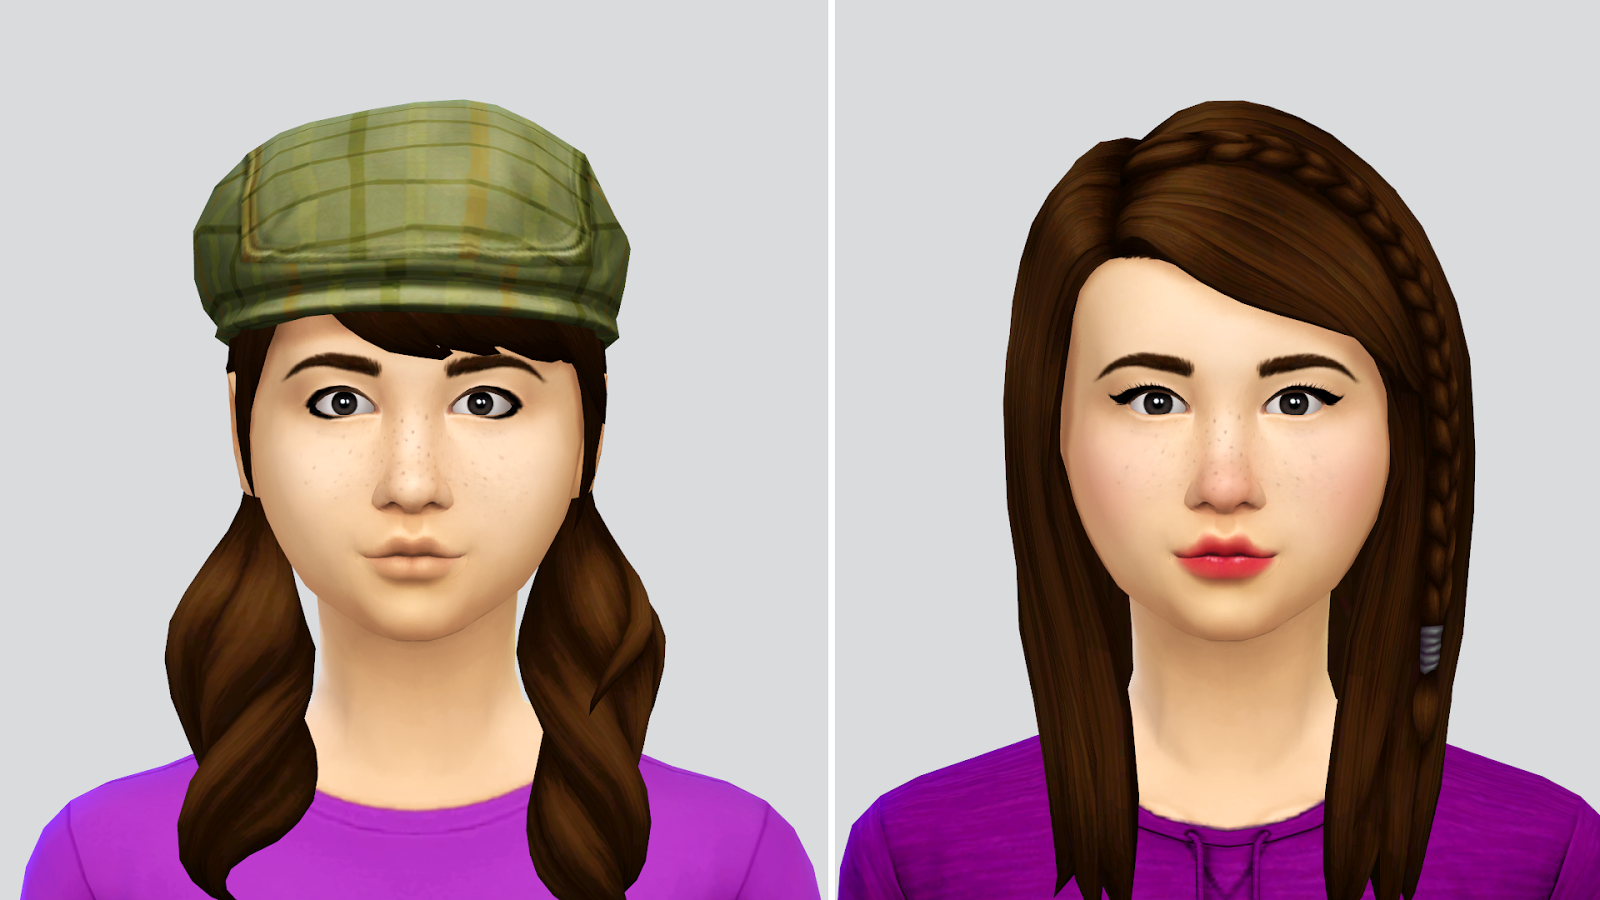 Missy's Sims and Stuff: The Sims 4 ~ Base Game Townie